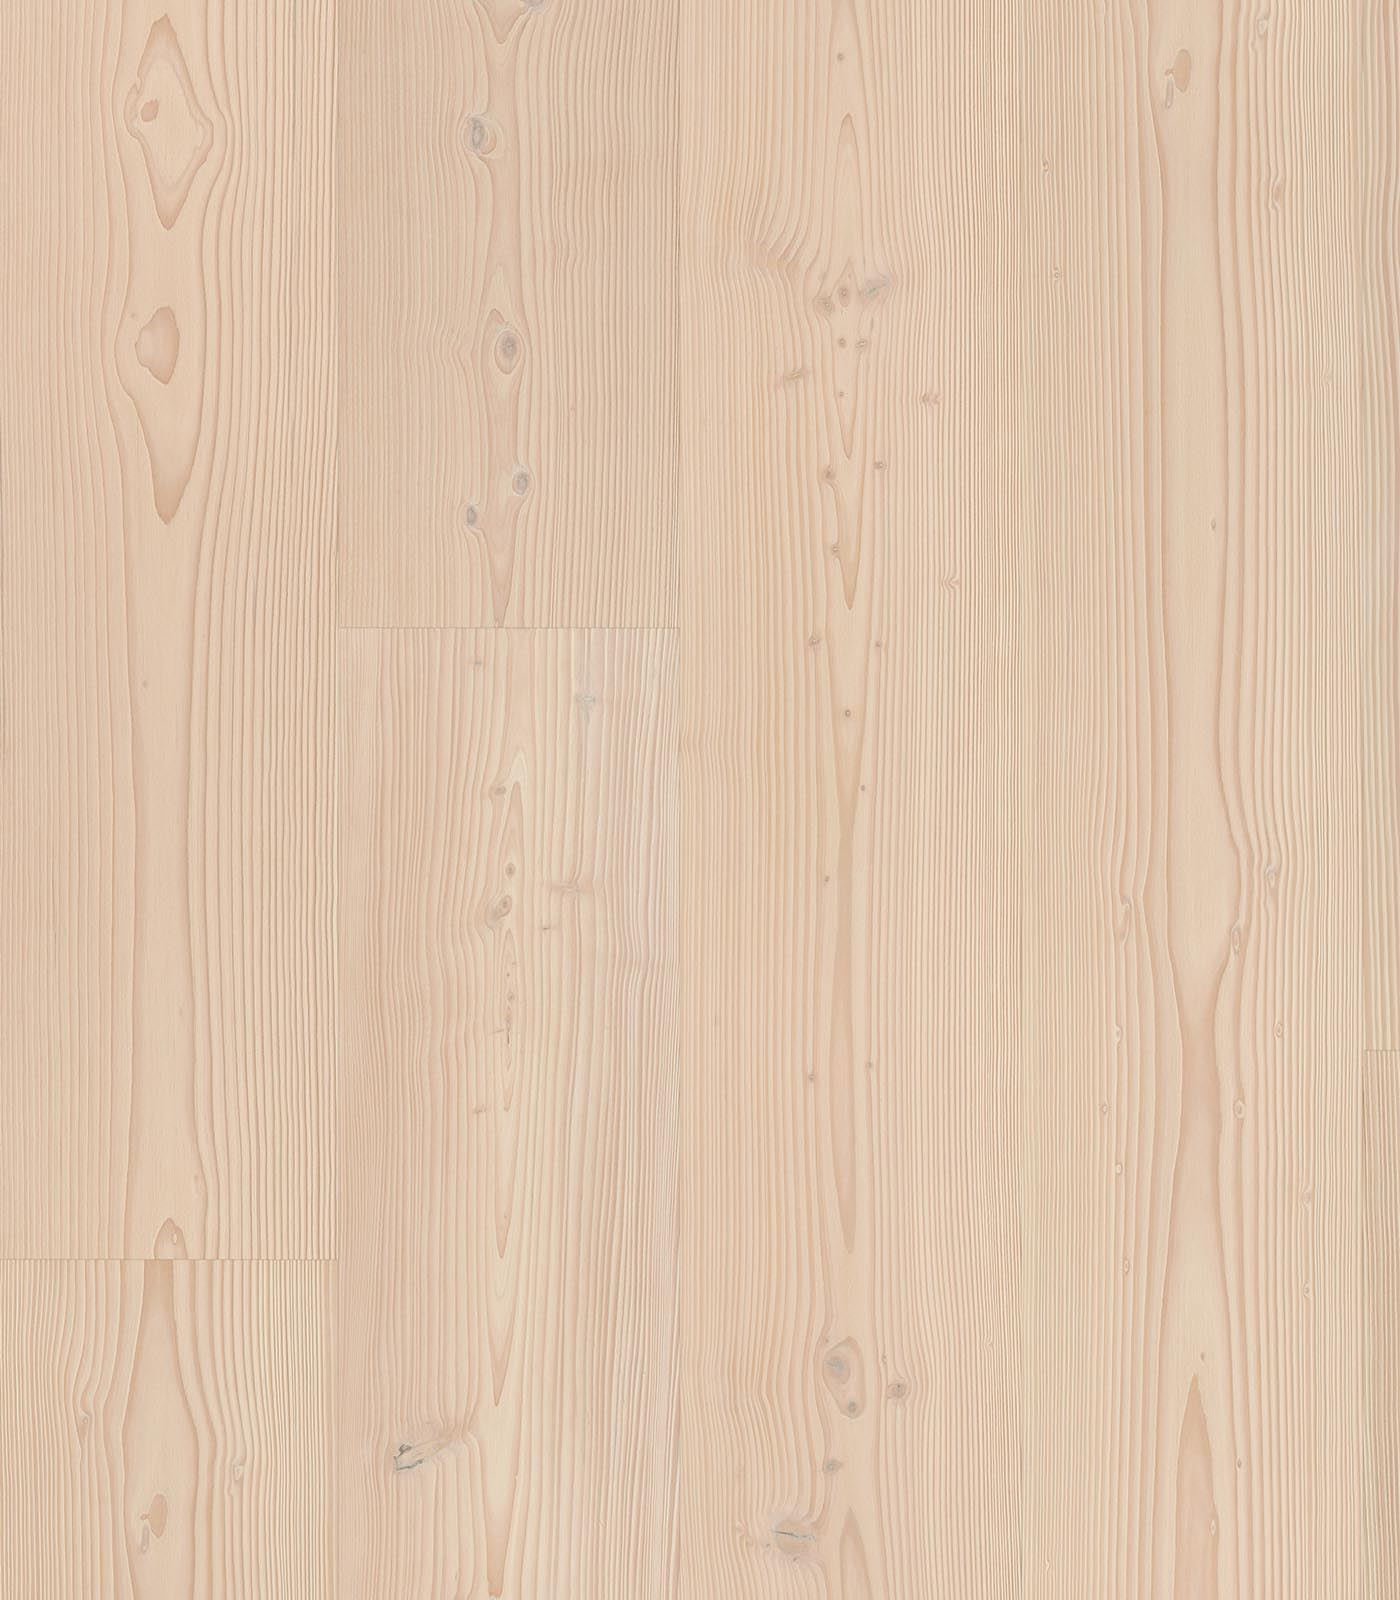 Origins Collection-Douglas Fir-very wide and very long planks-Forestry Timber-flat